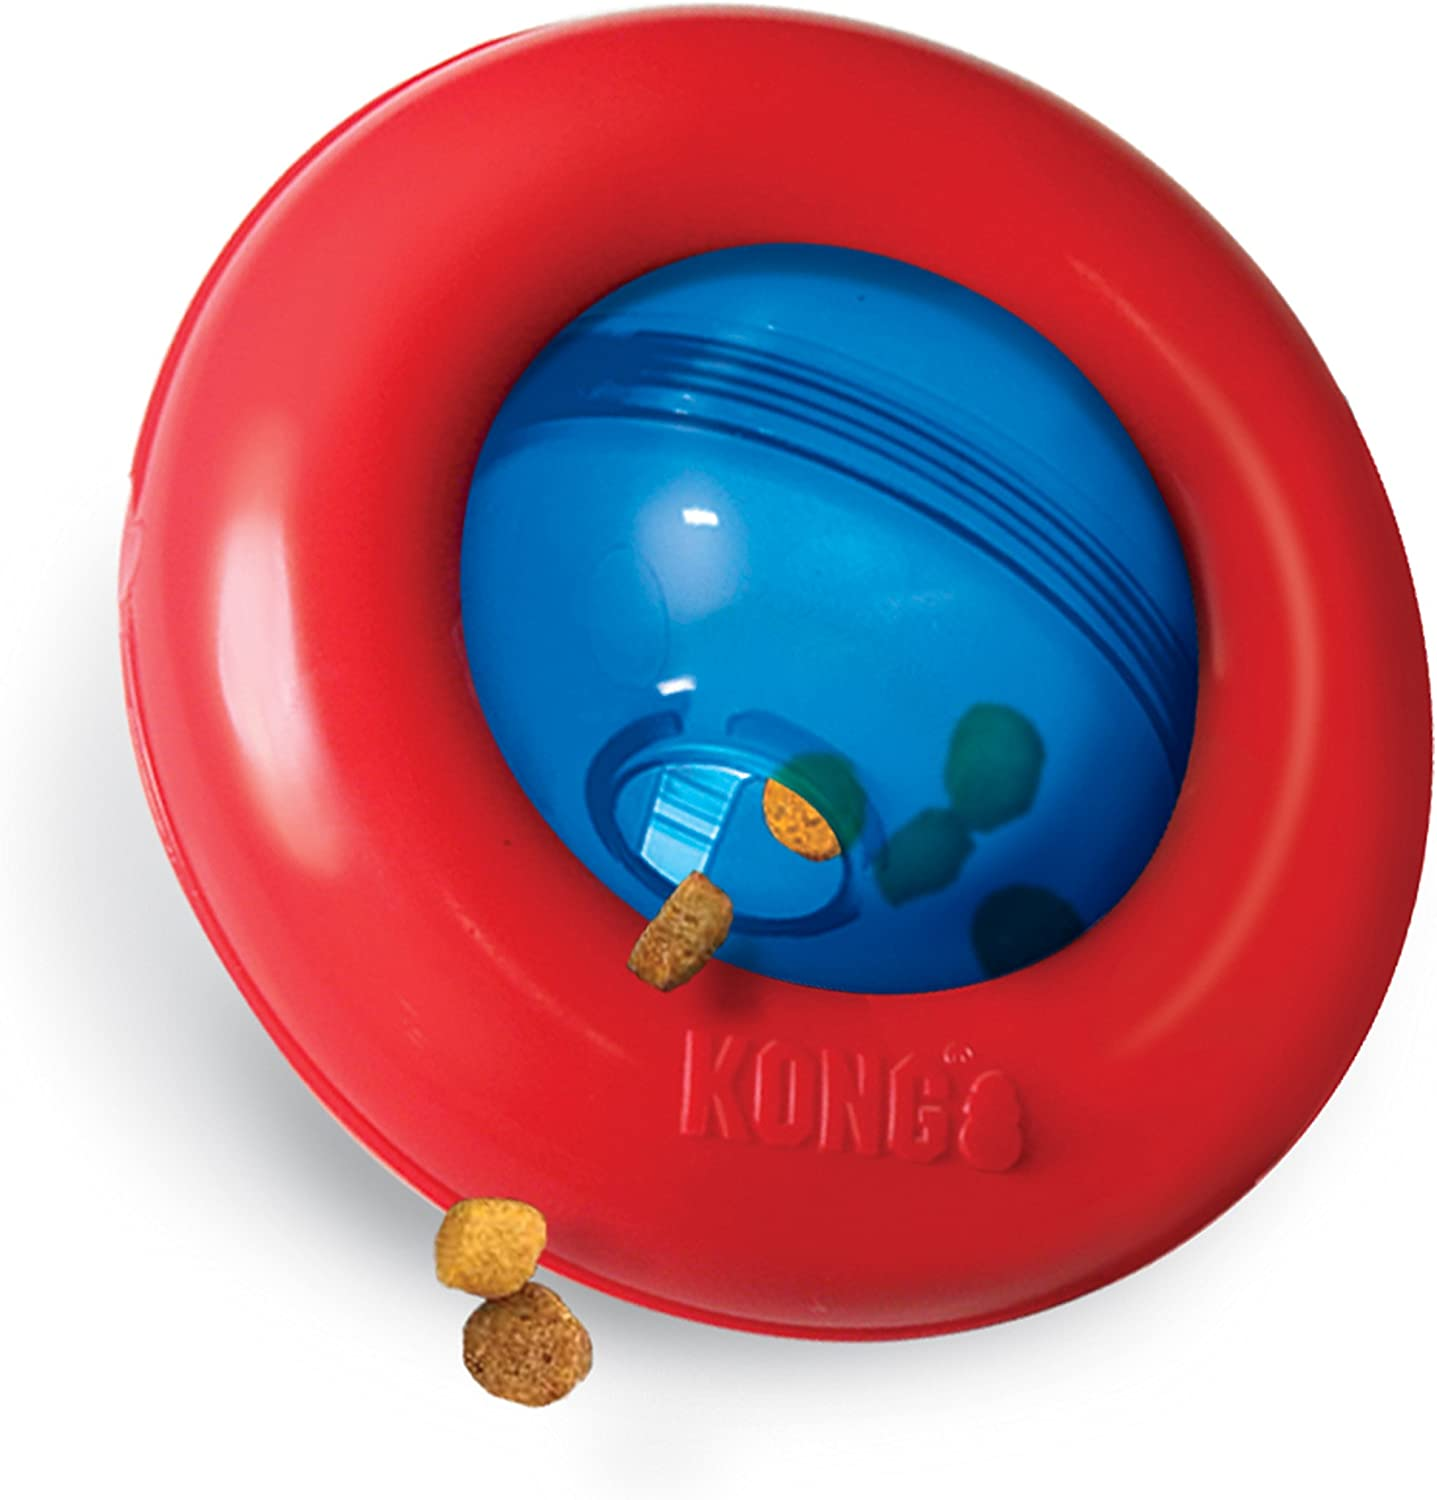 KONG - Gyro - Interactive Treat Dispensing Dog Toy - for Small Dogs